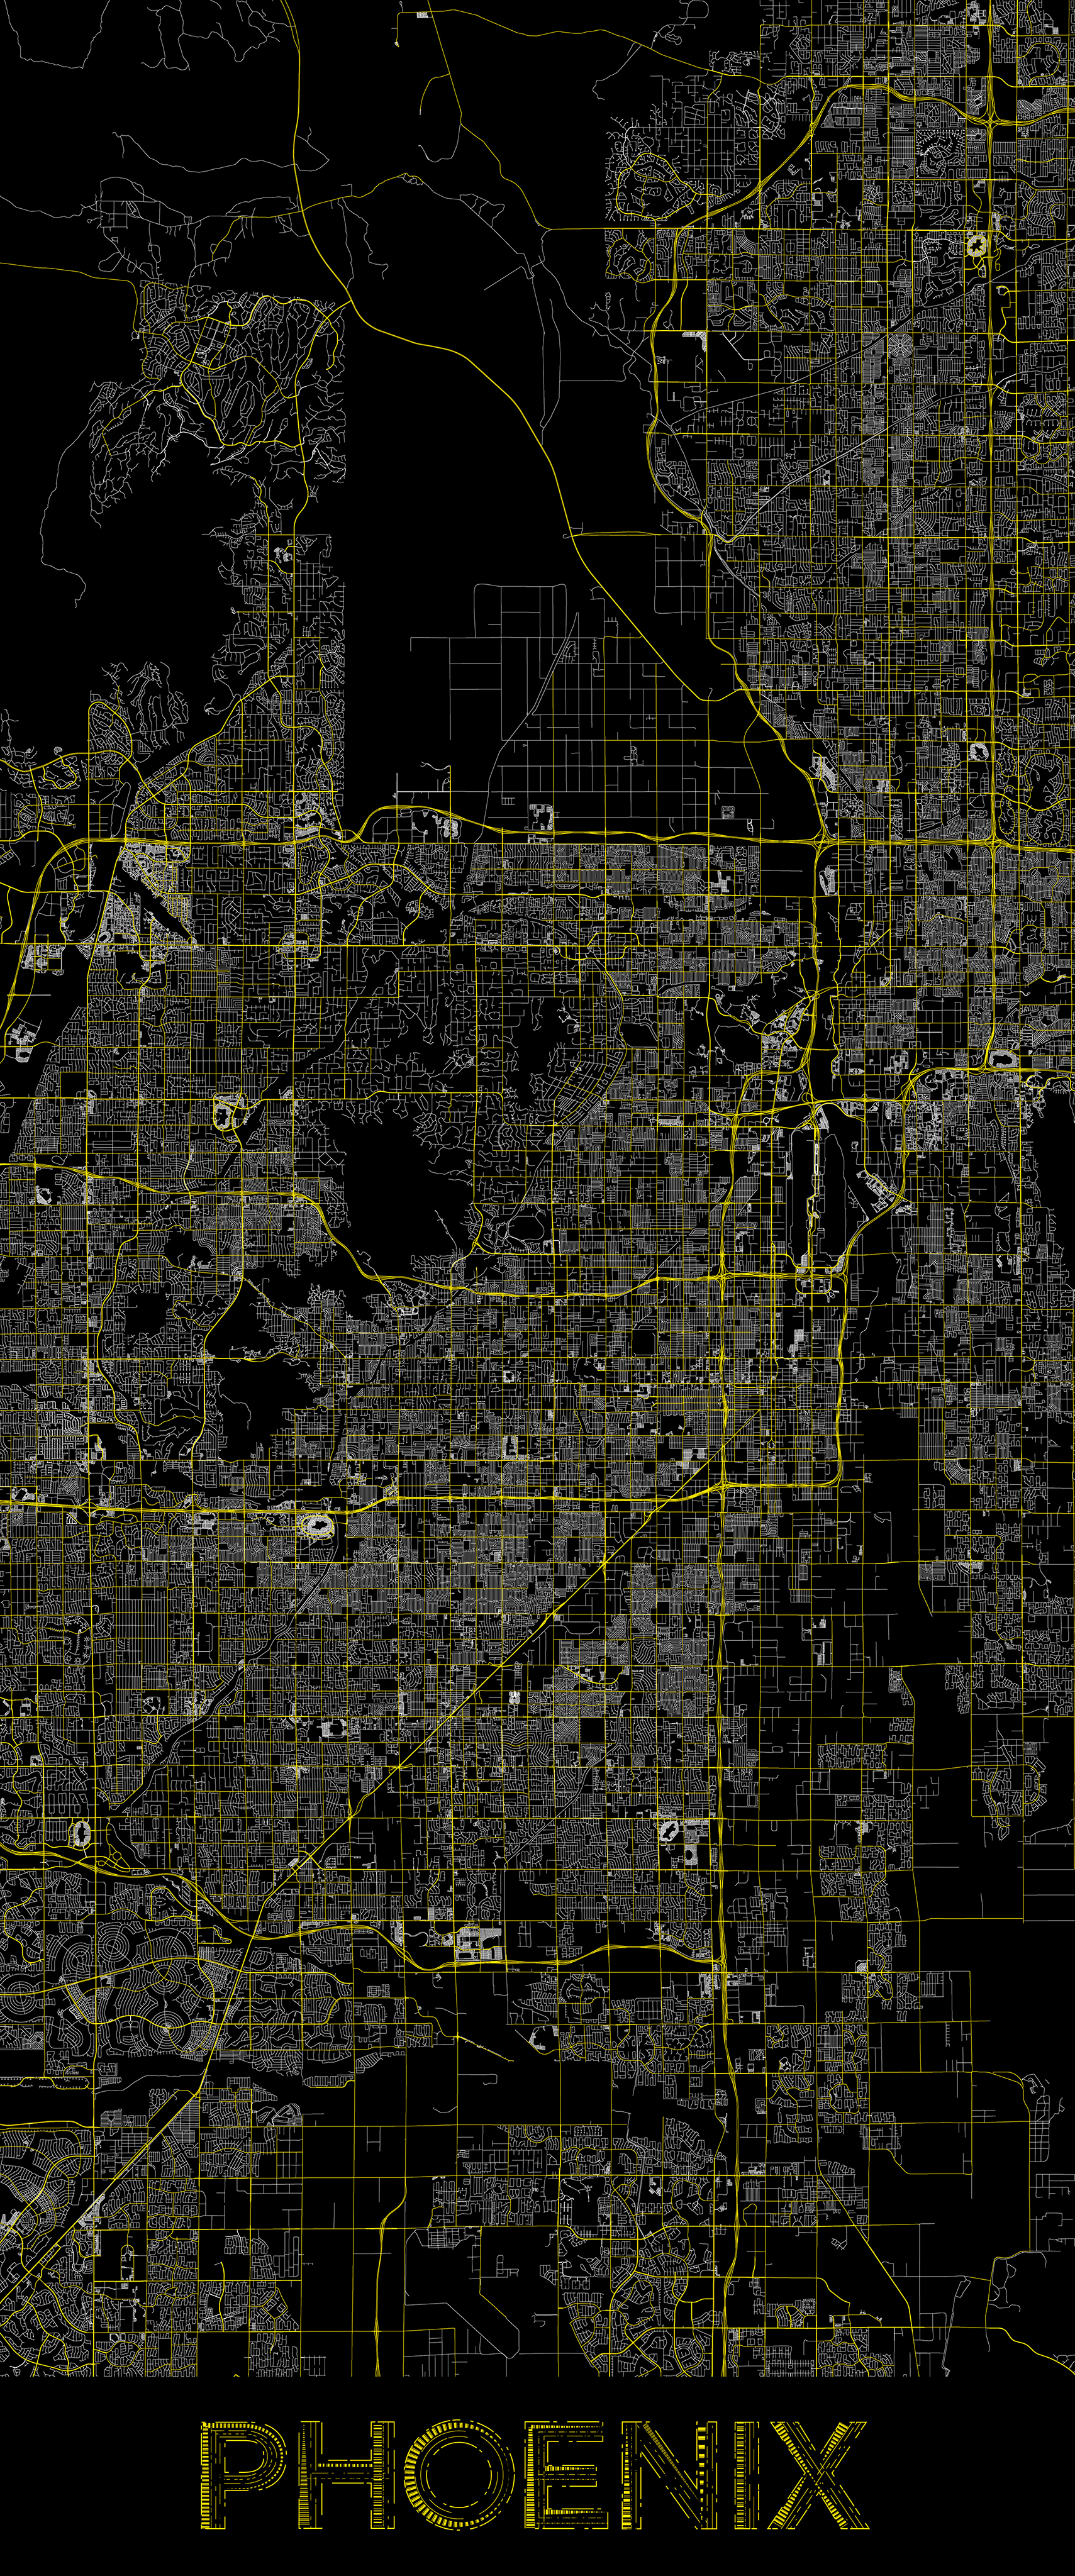 City map illustration of Phoenix created using Maperitive, OpenStreetMap and Adobe Illustrator.